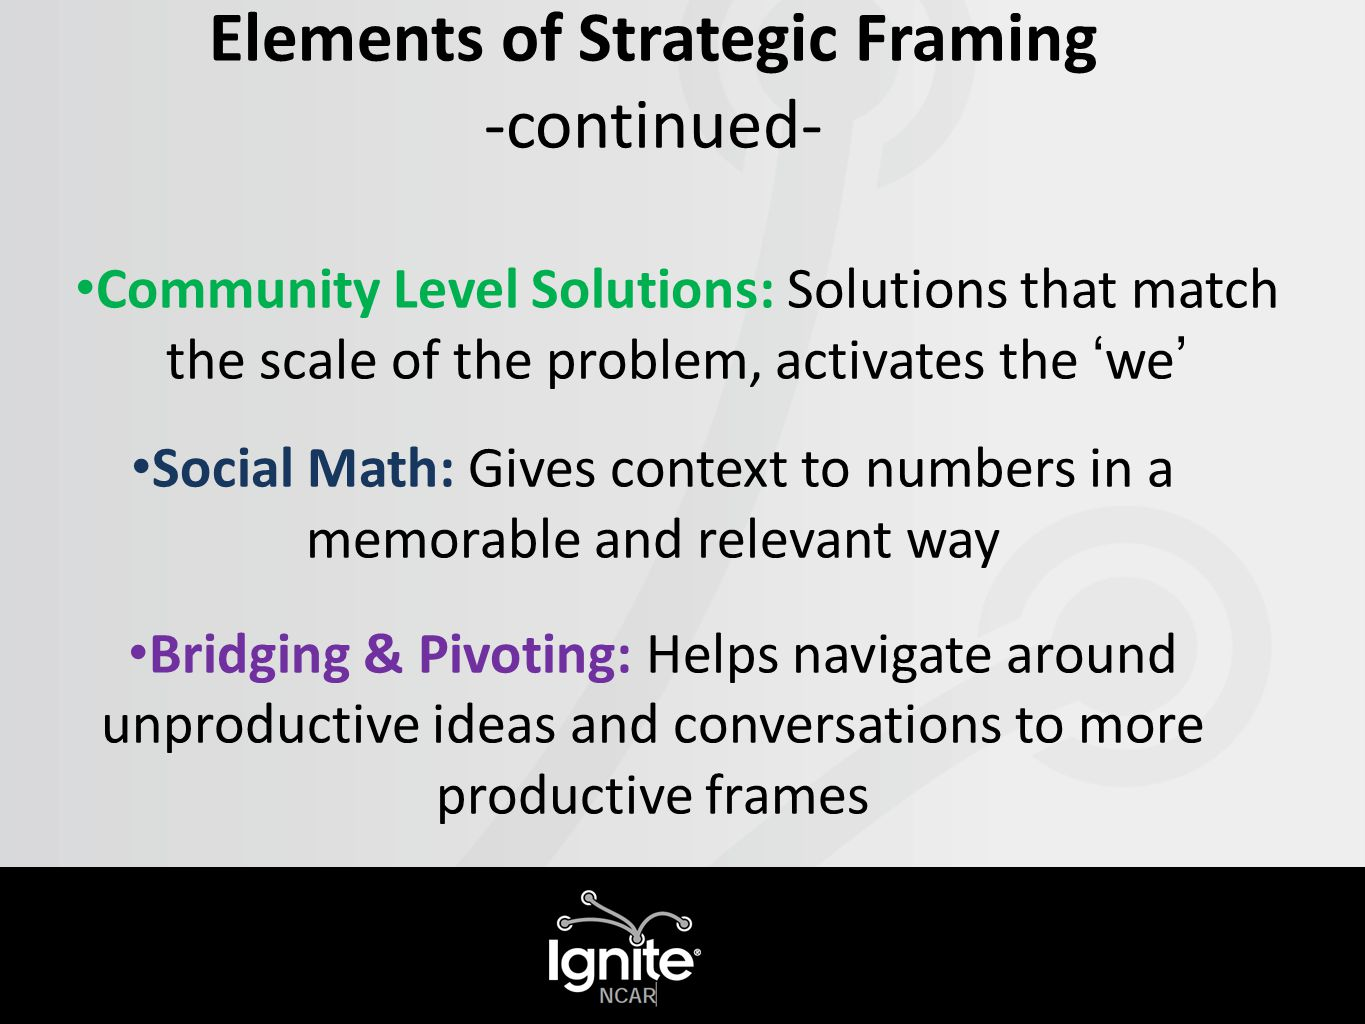 Elements of Strategic Framing -continued- Community Level Solutions: Solutions that match the scale of the problem, activates the 'we' Social Math: Gives context to numbers in a memorable and relevant way Bridging & Pivoting: Helps navigate around unproductive ideas and conversations to more productive frames.